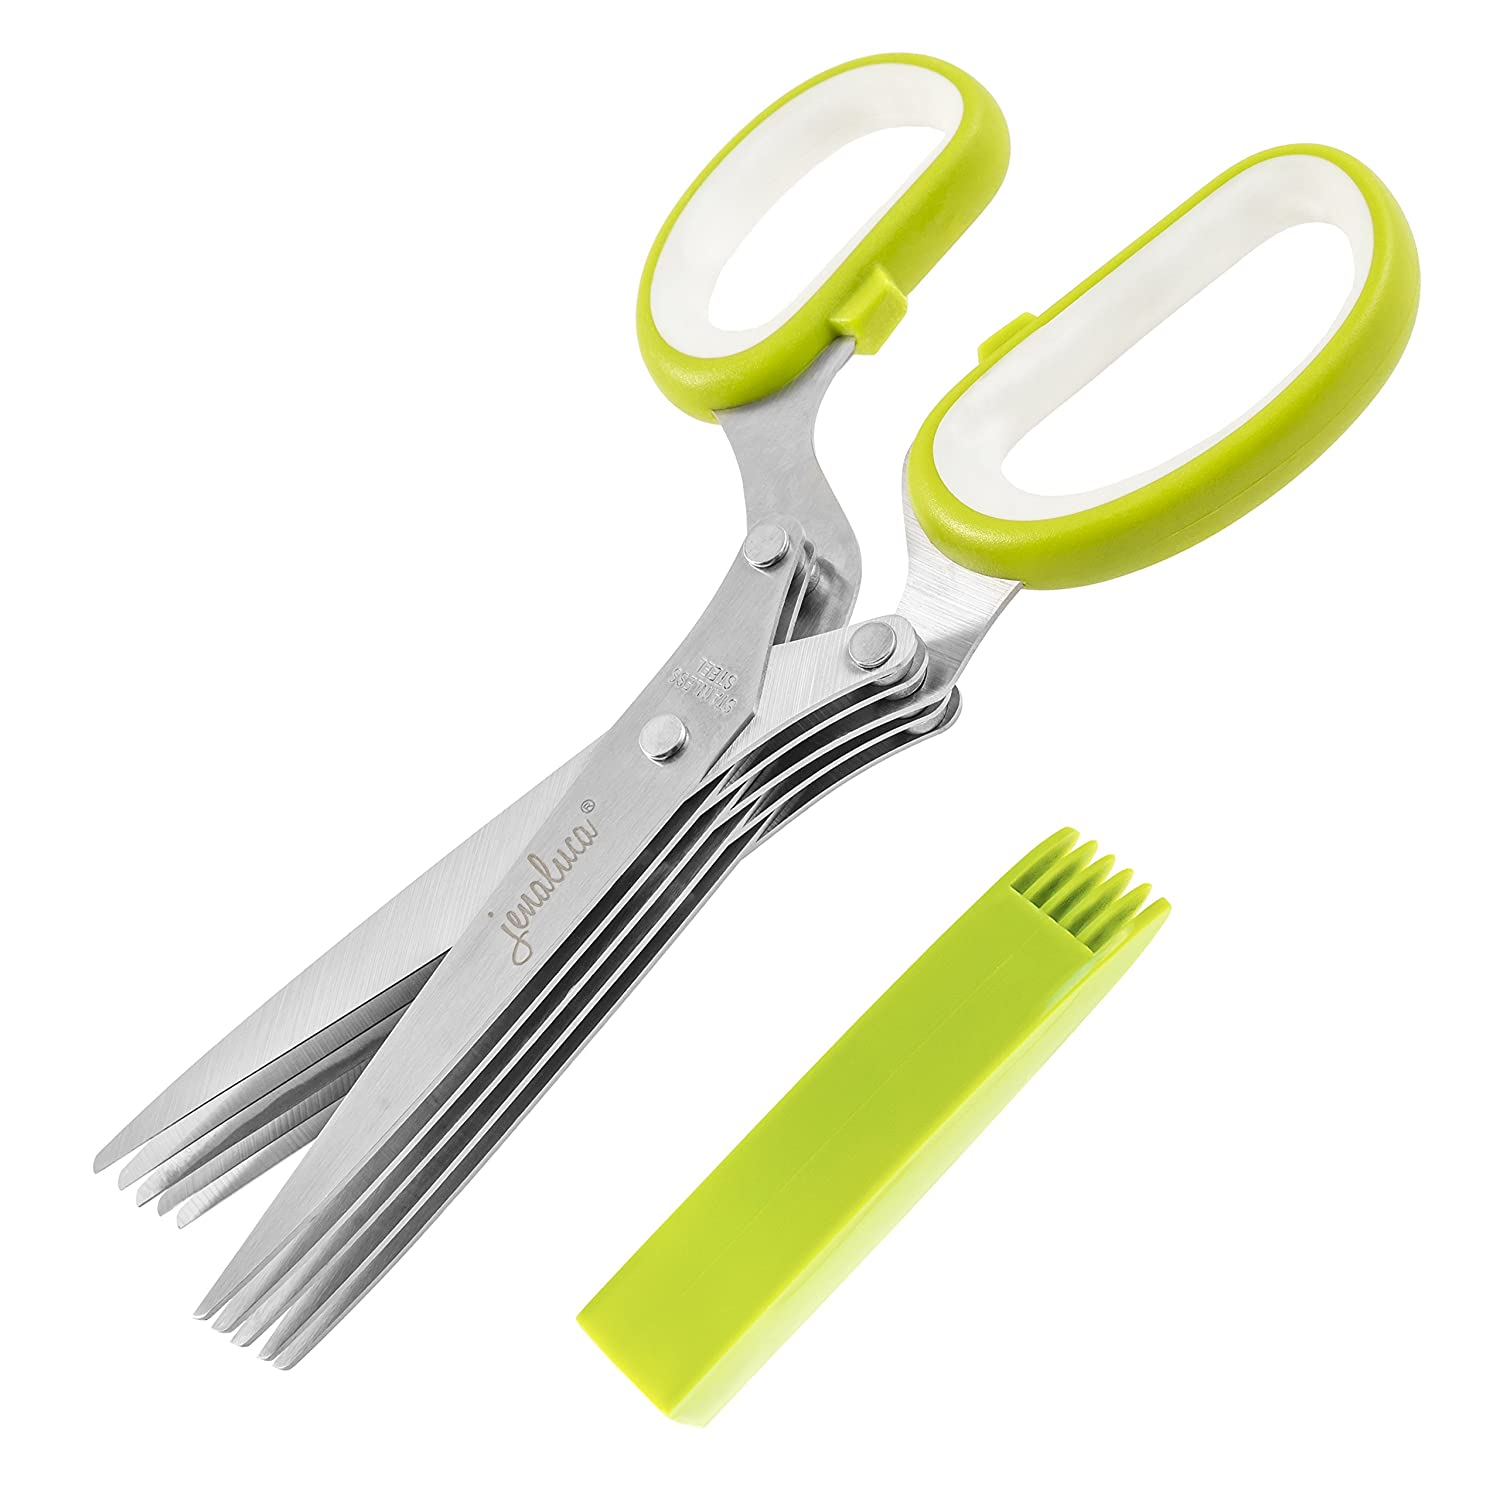 Jenaluca Herb Scissors Stainless Steel - Multipurpose Kitchen Shear with